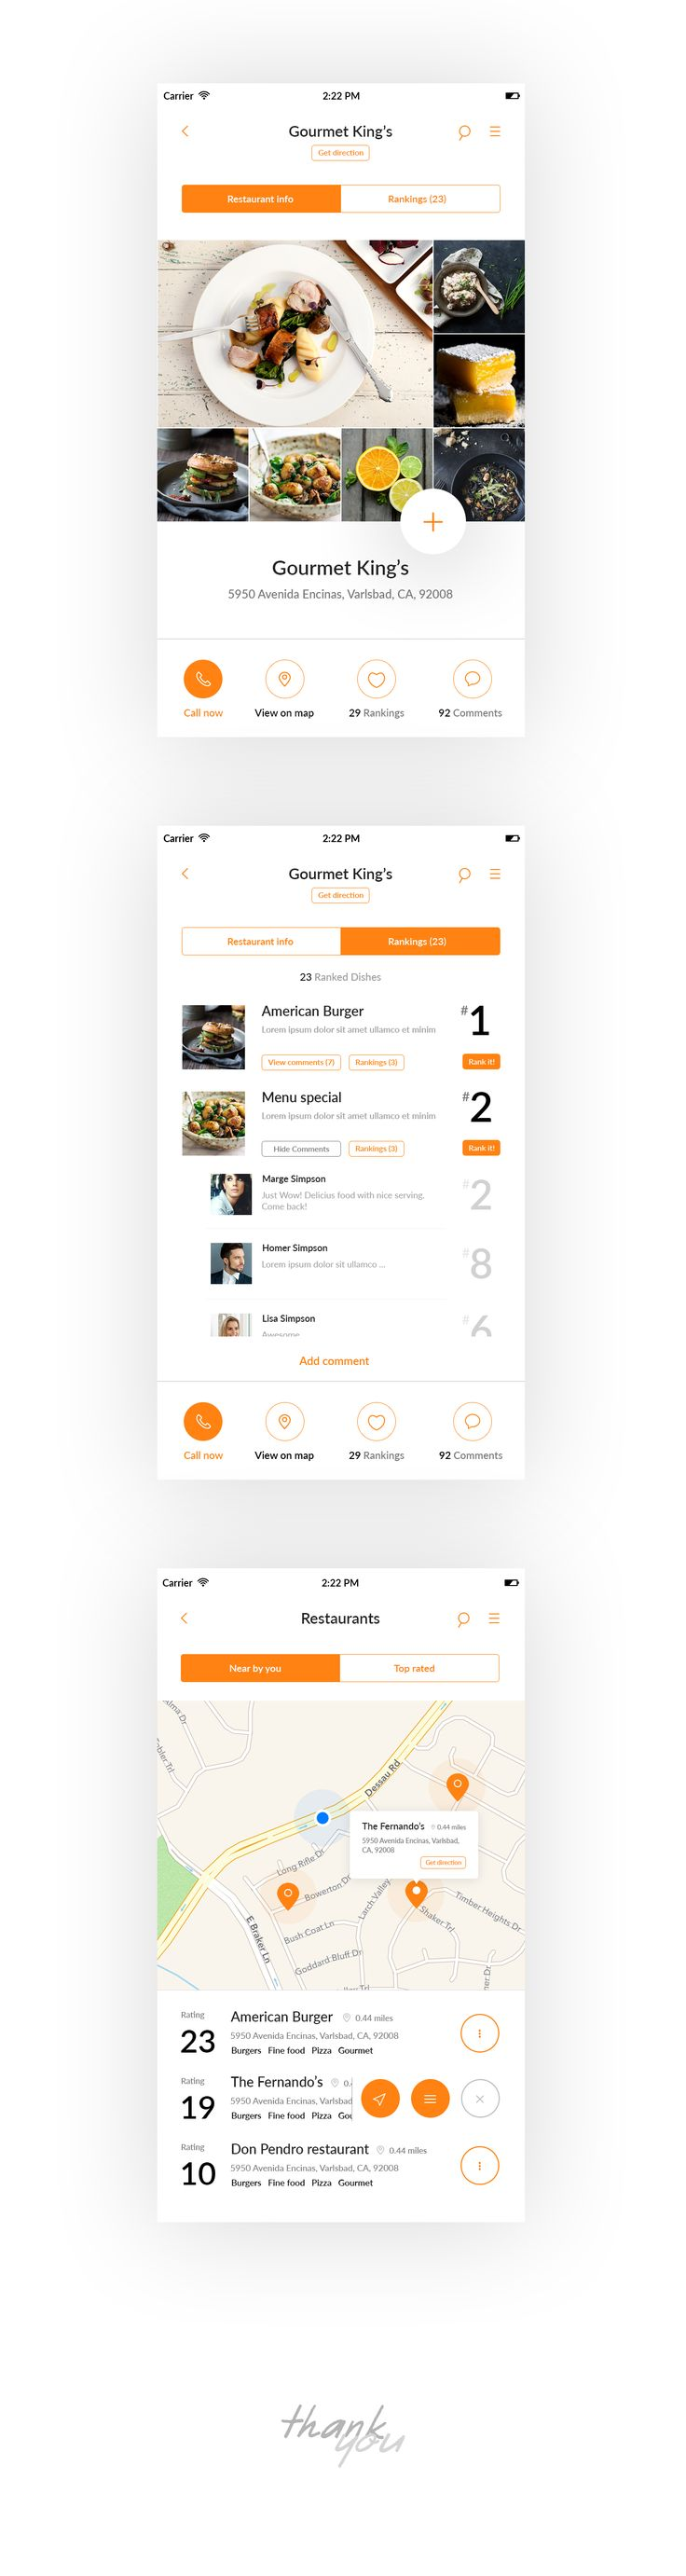 IOS Application for food service search tool.